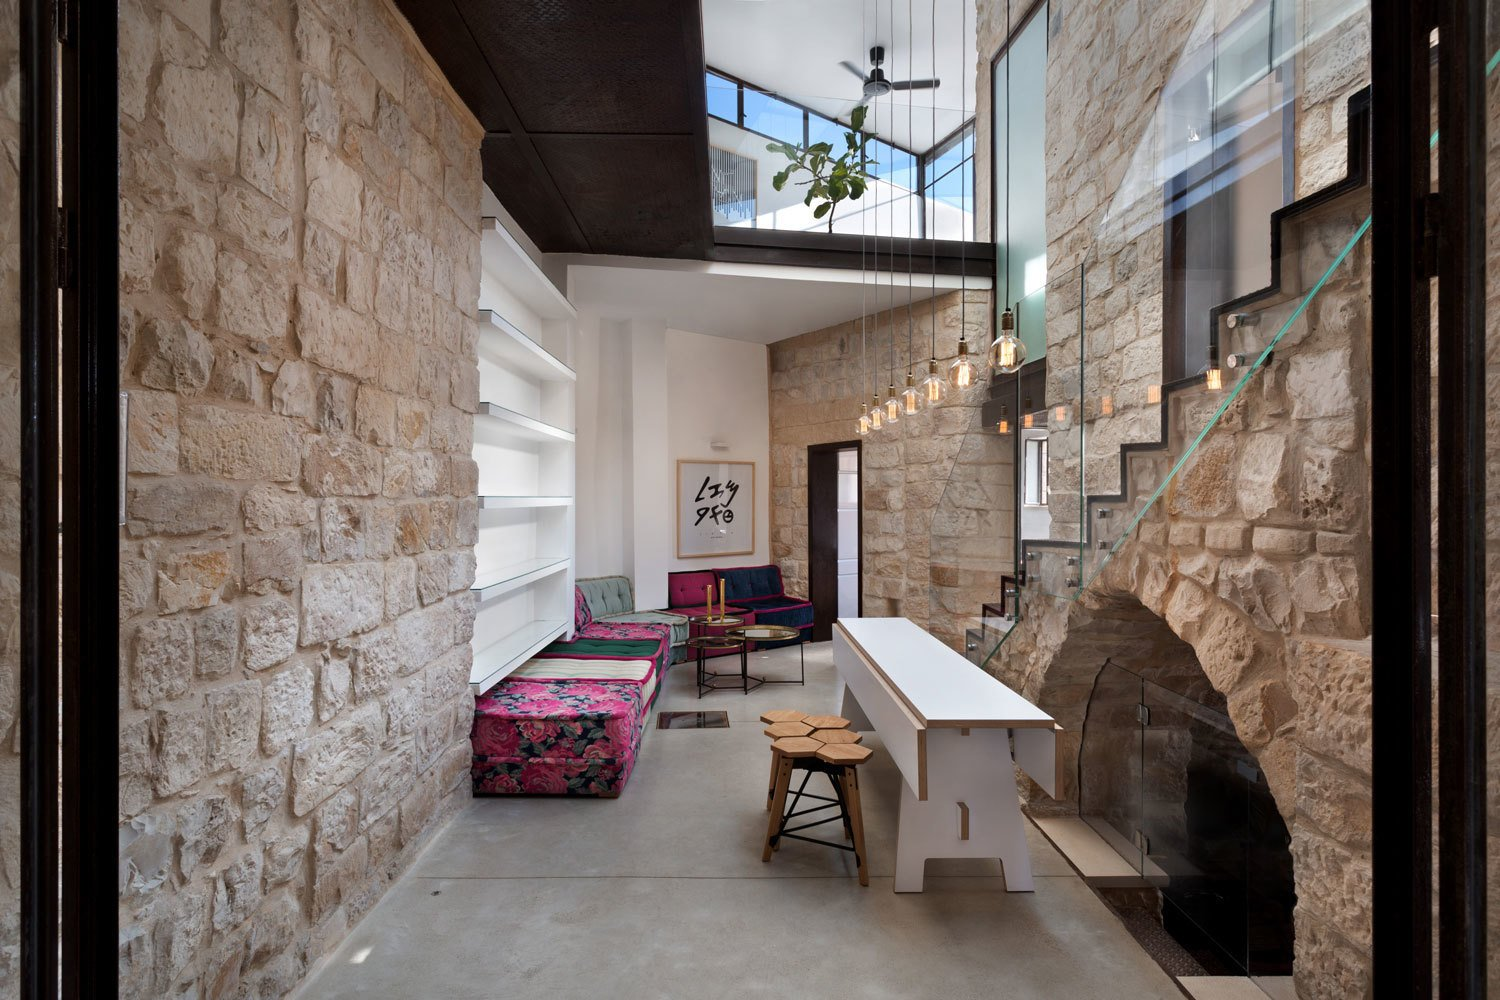 A 250 Year Old Stone House in Israel With